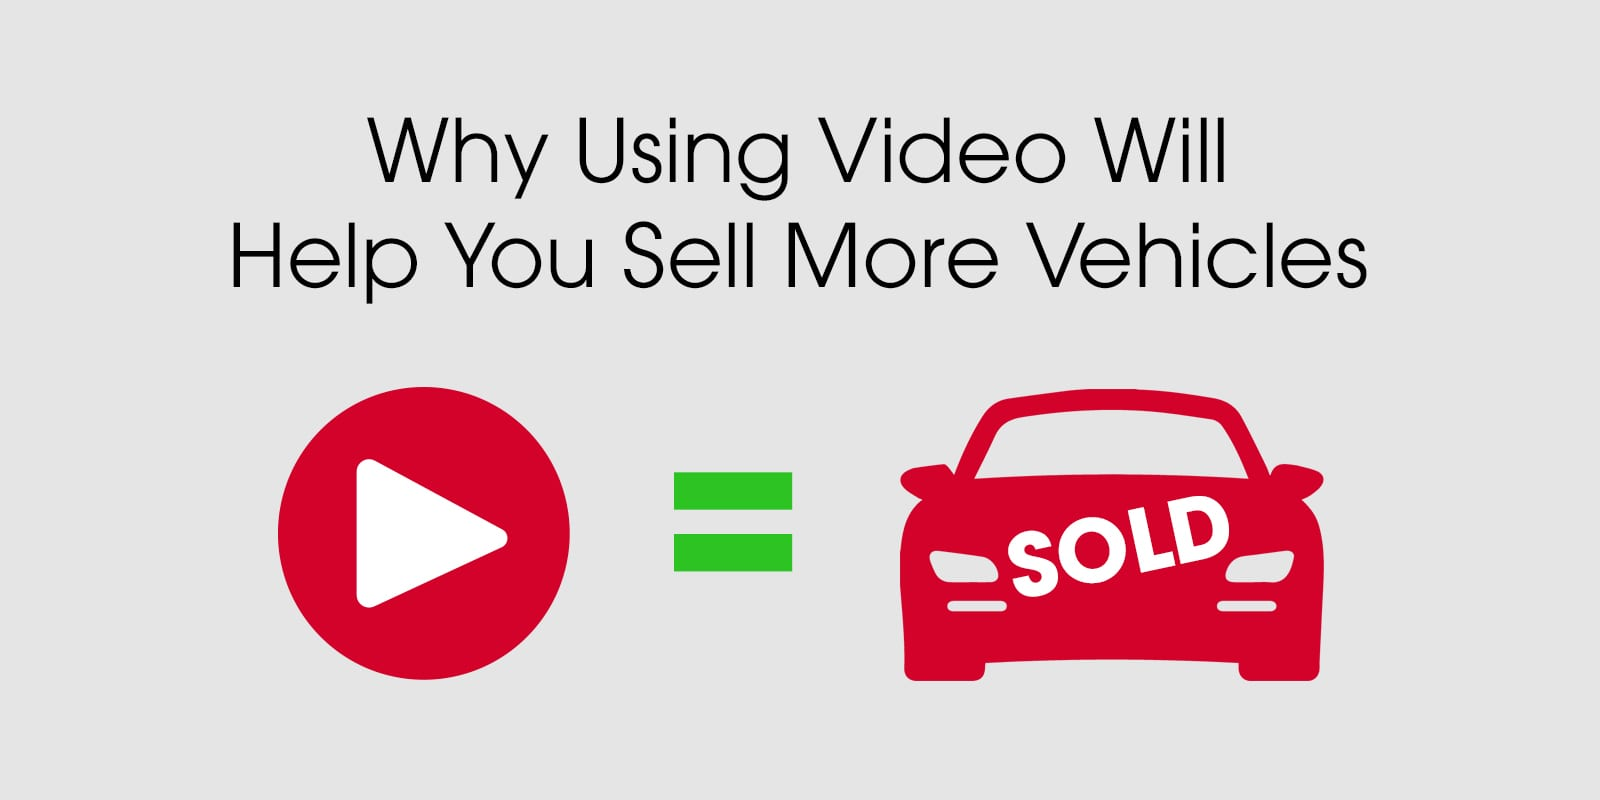 why video sells more vehicles